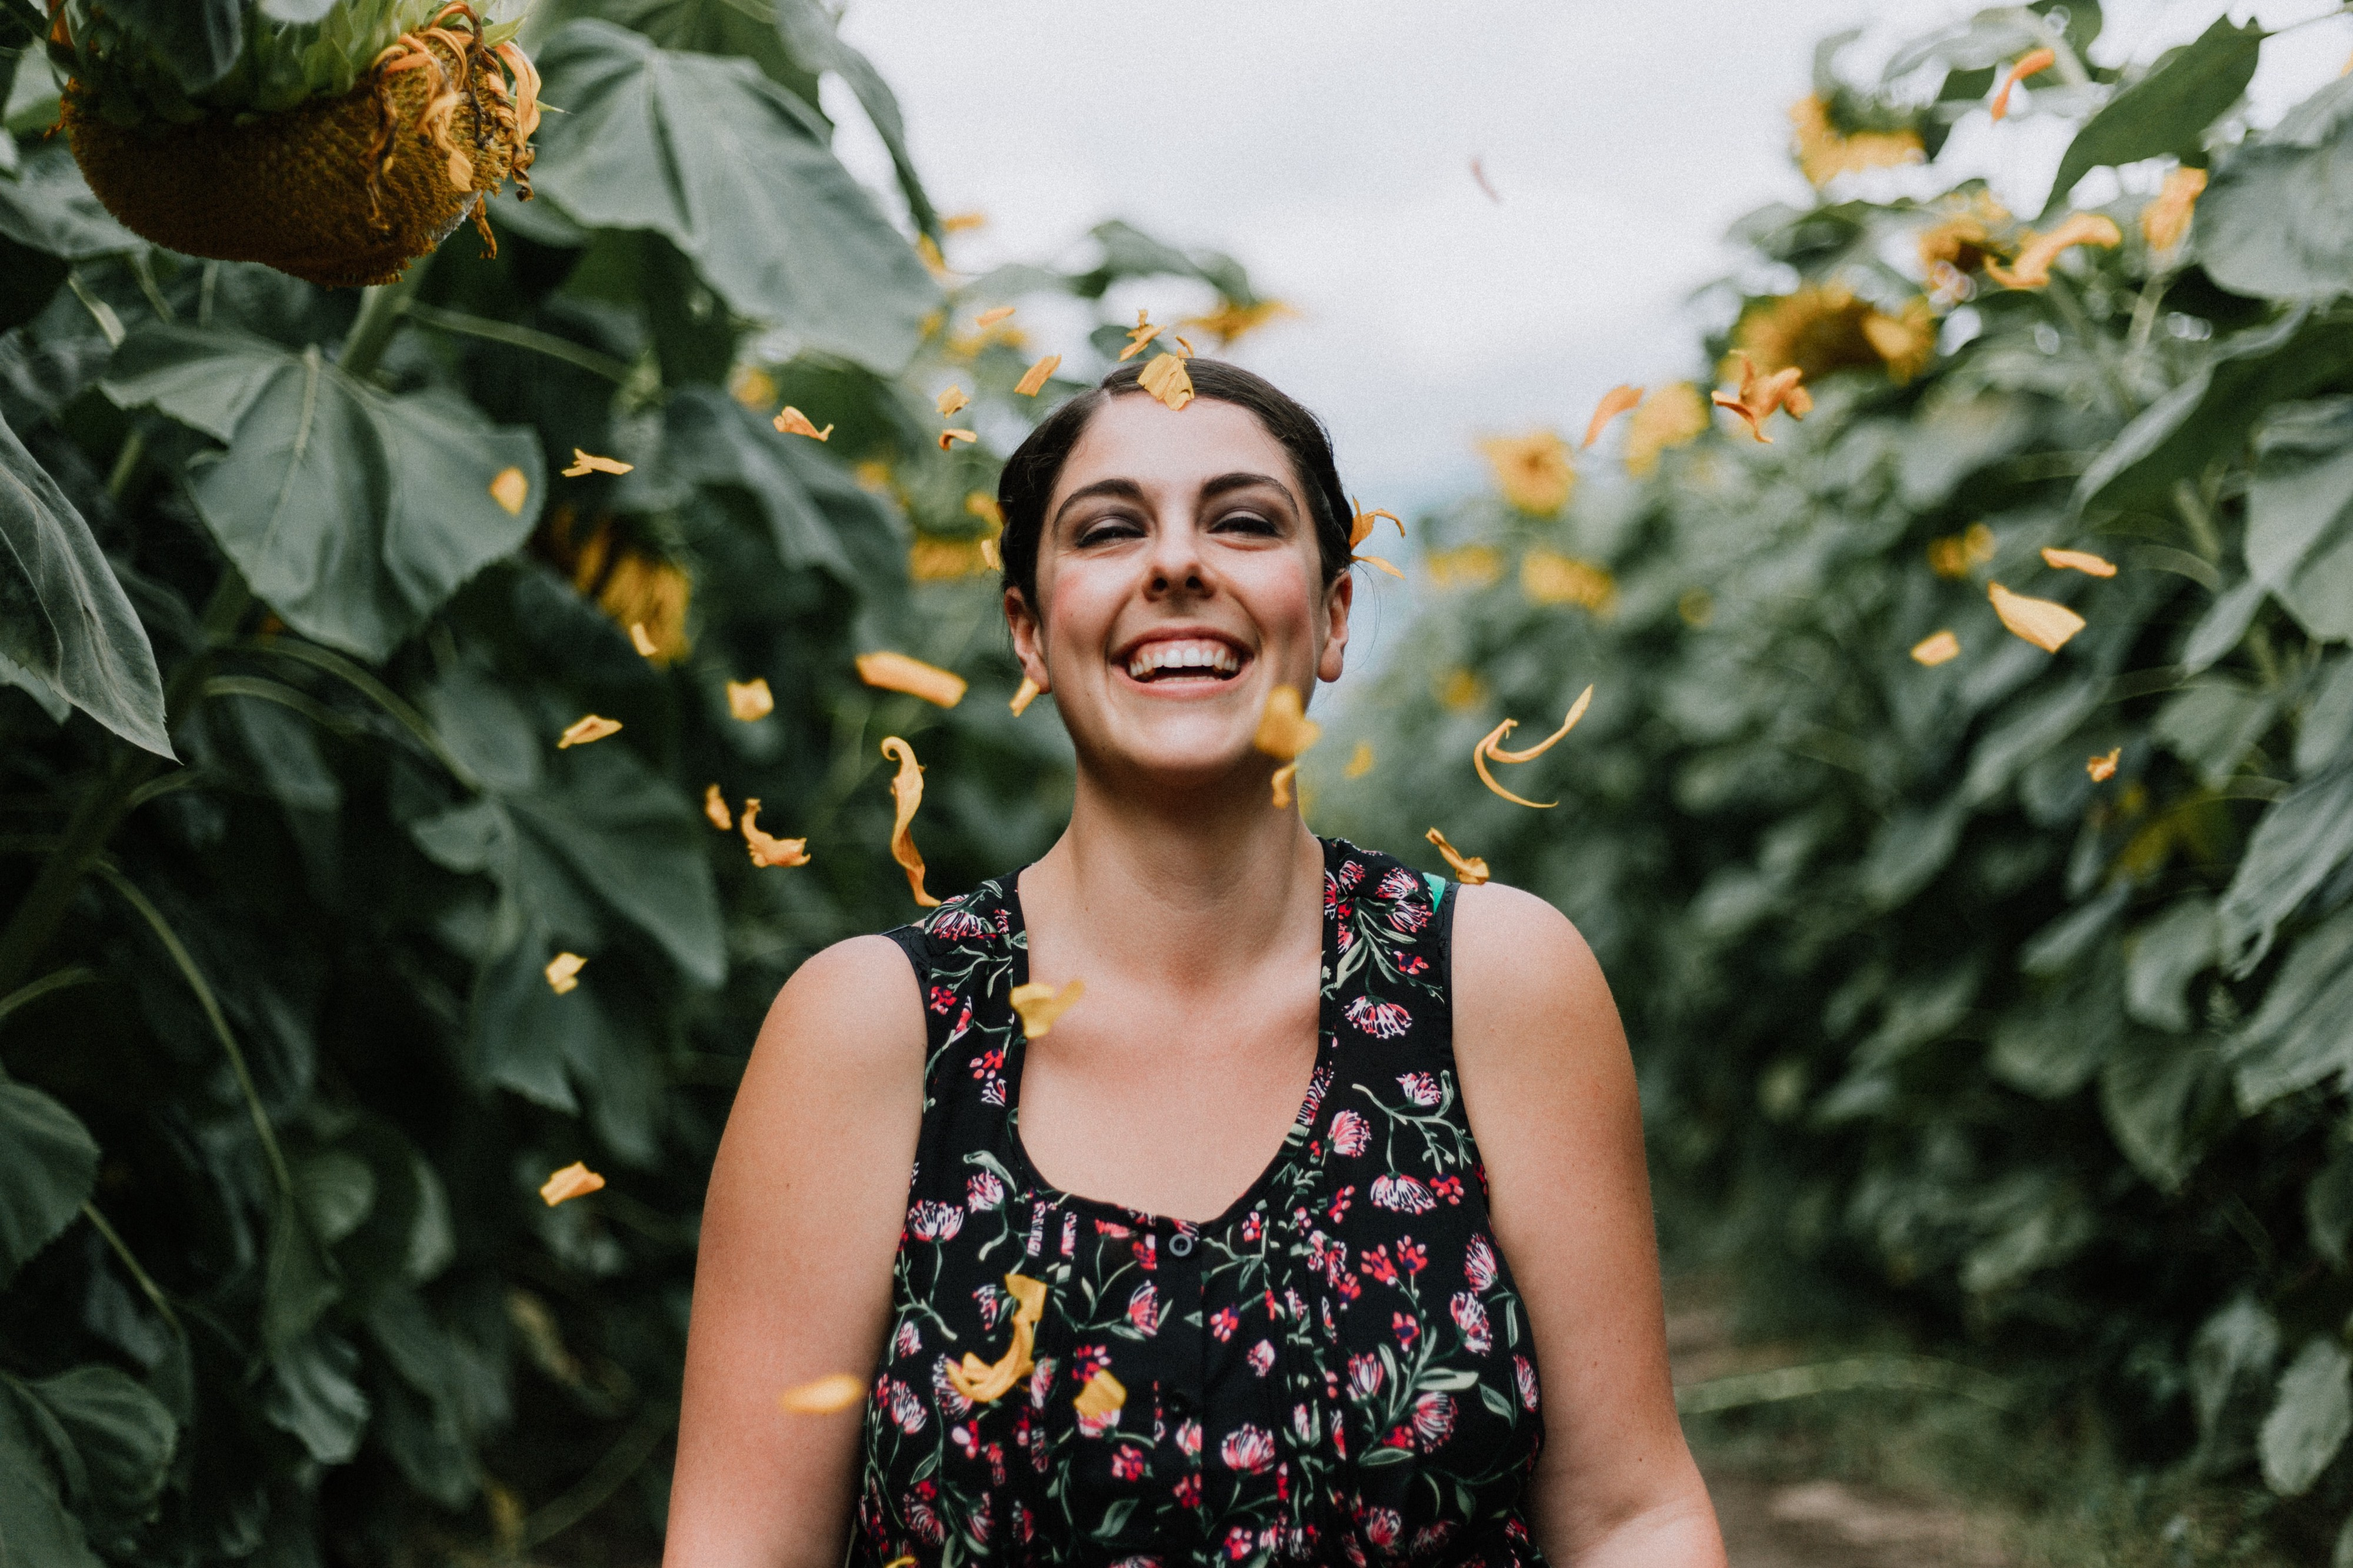 smiling woman with brown hair in flowered dress standing in middle of sunflower field